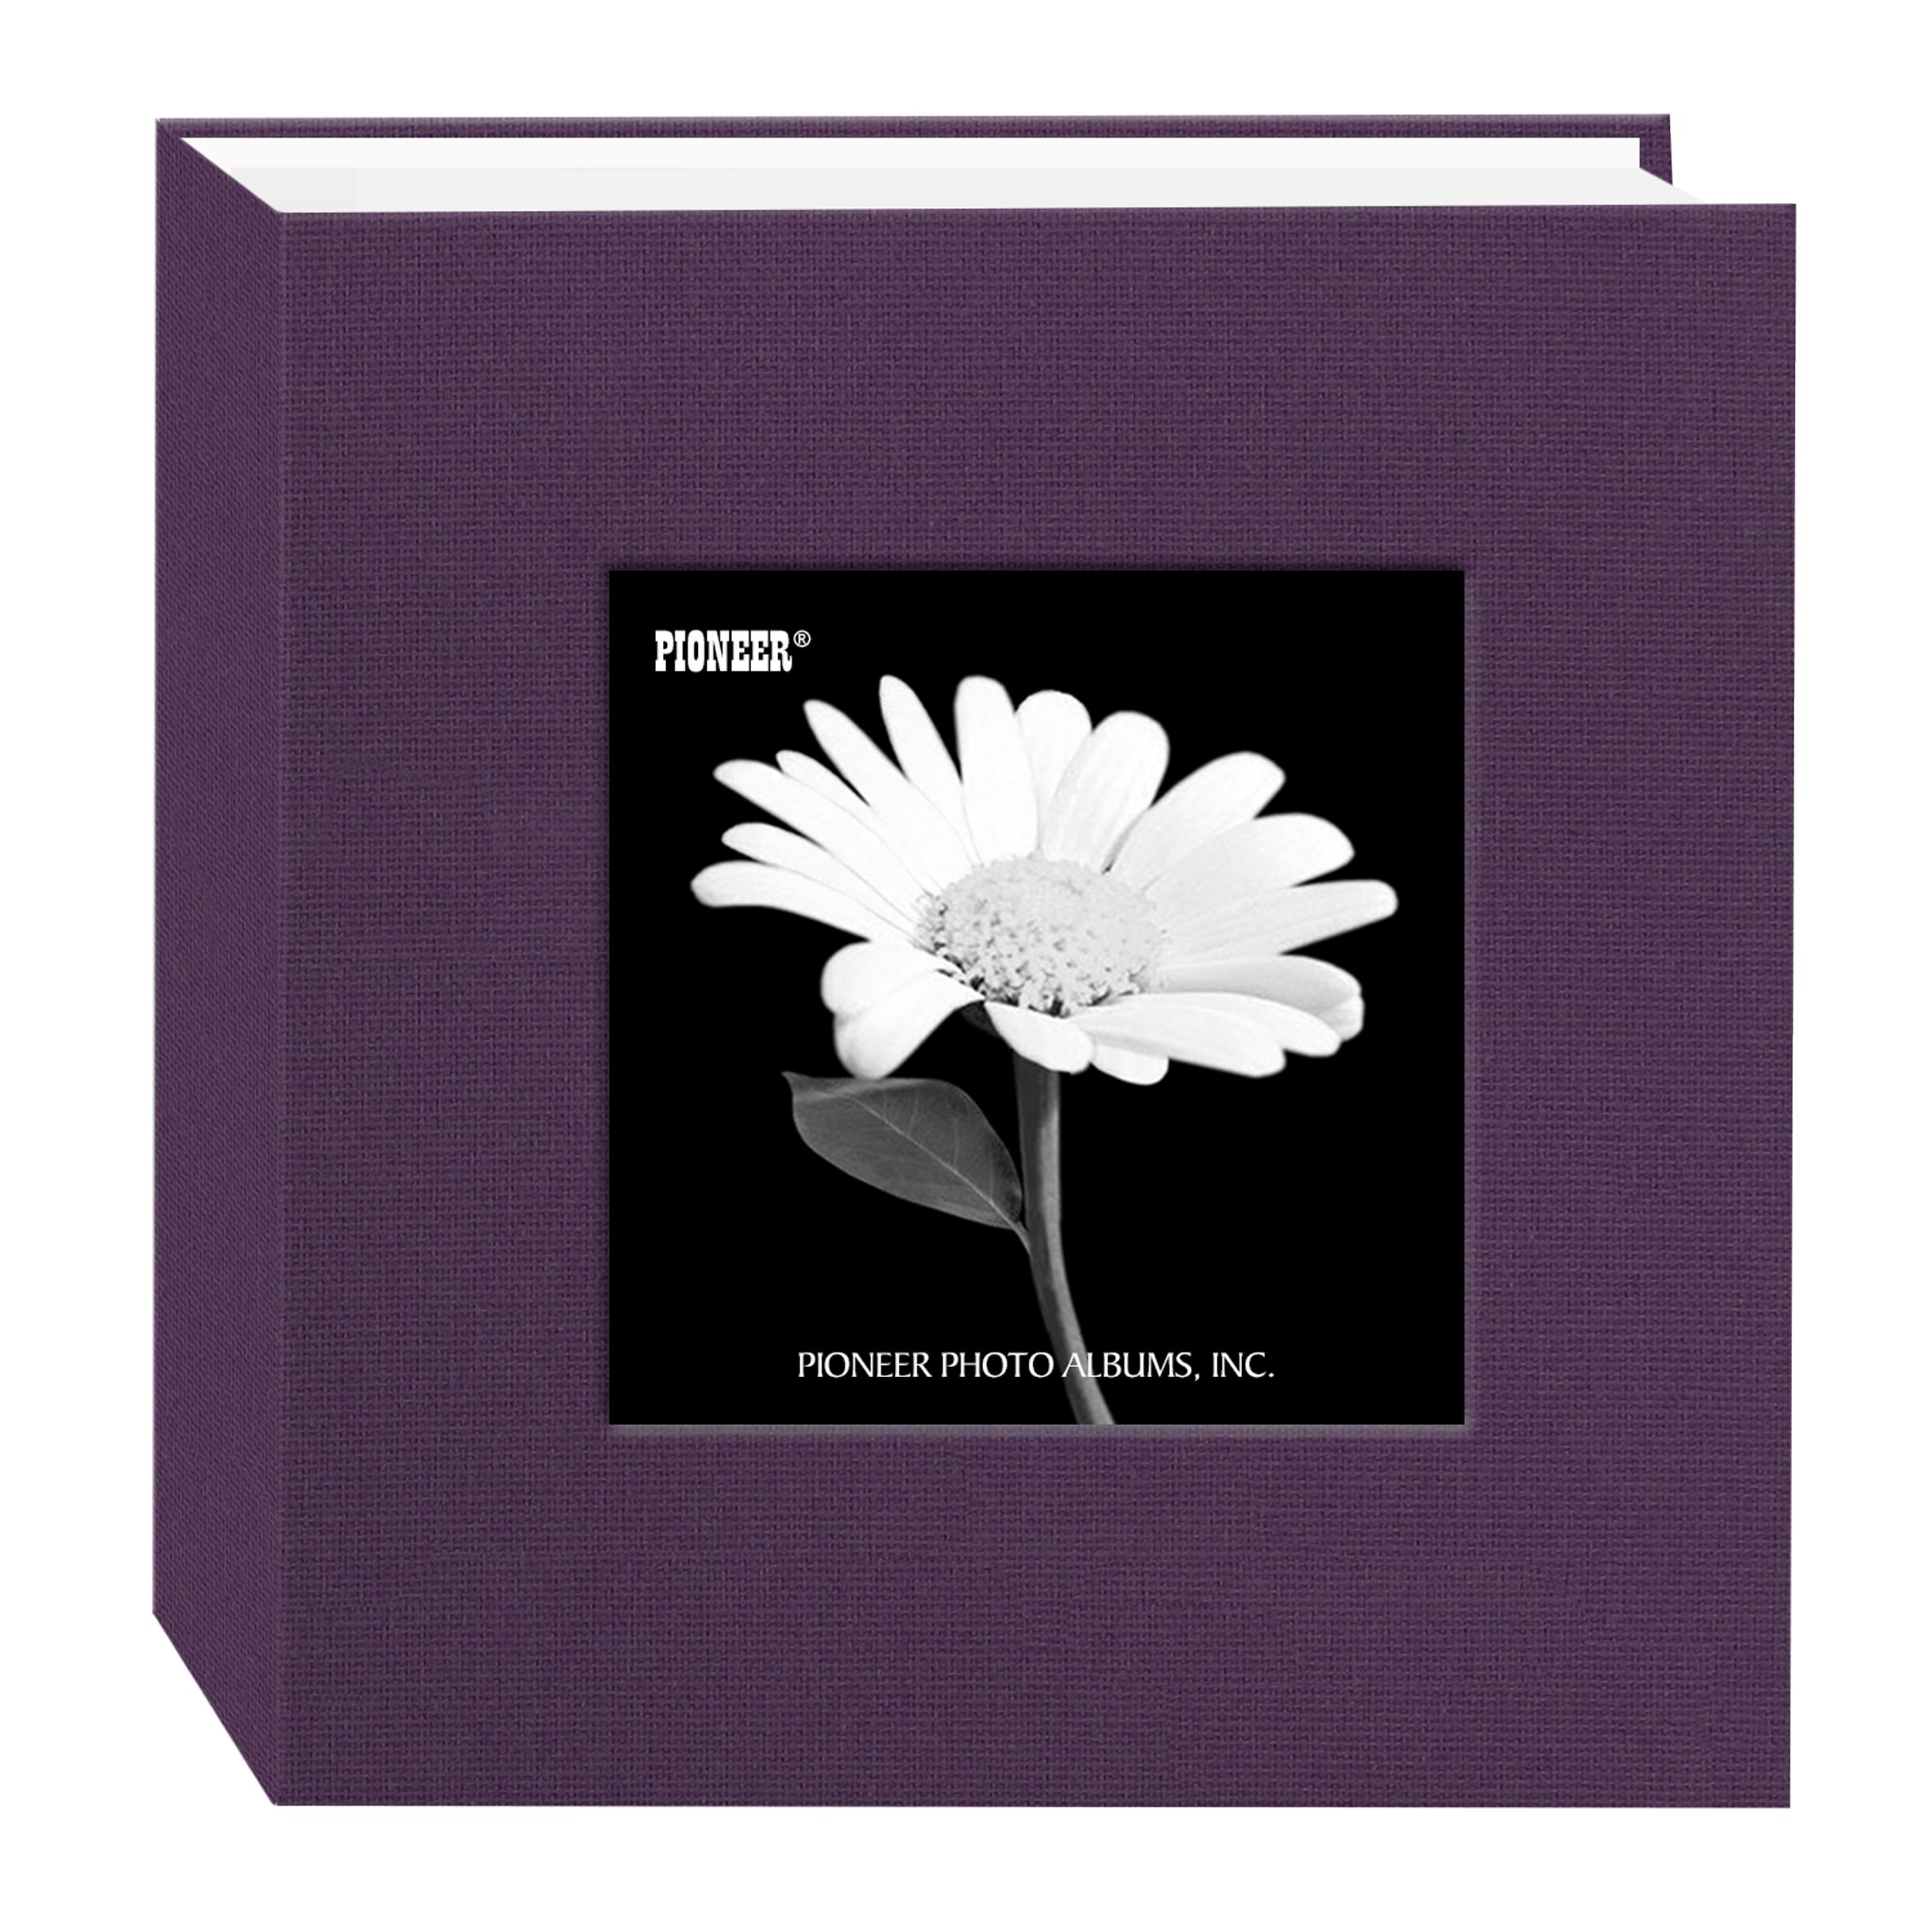 Pioneer 100 Pocket Fabric Frame Cover Photo Album, Wildberry Purple by Pioneer Photo Albums